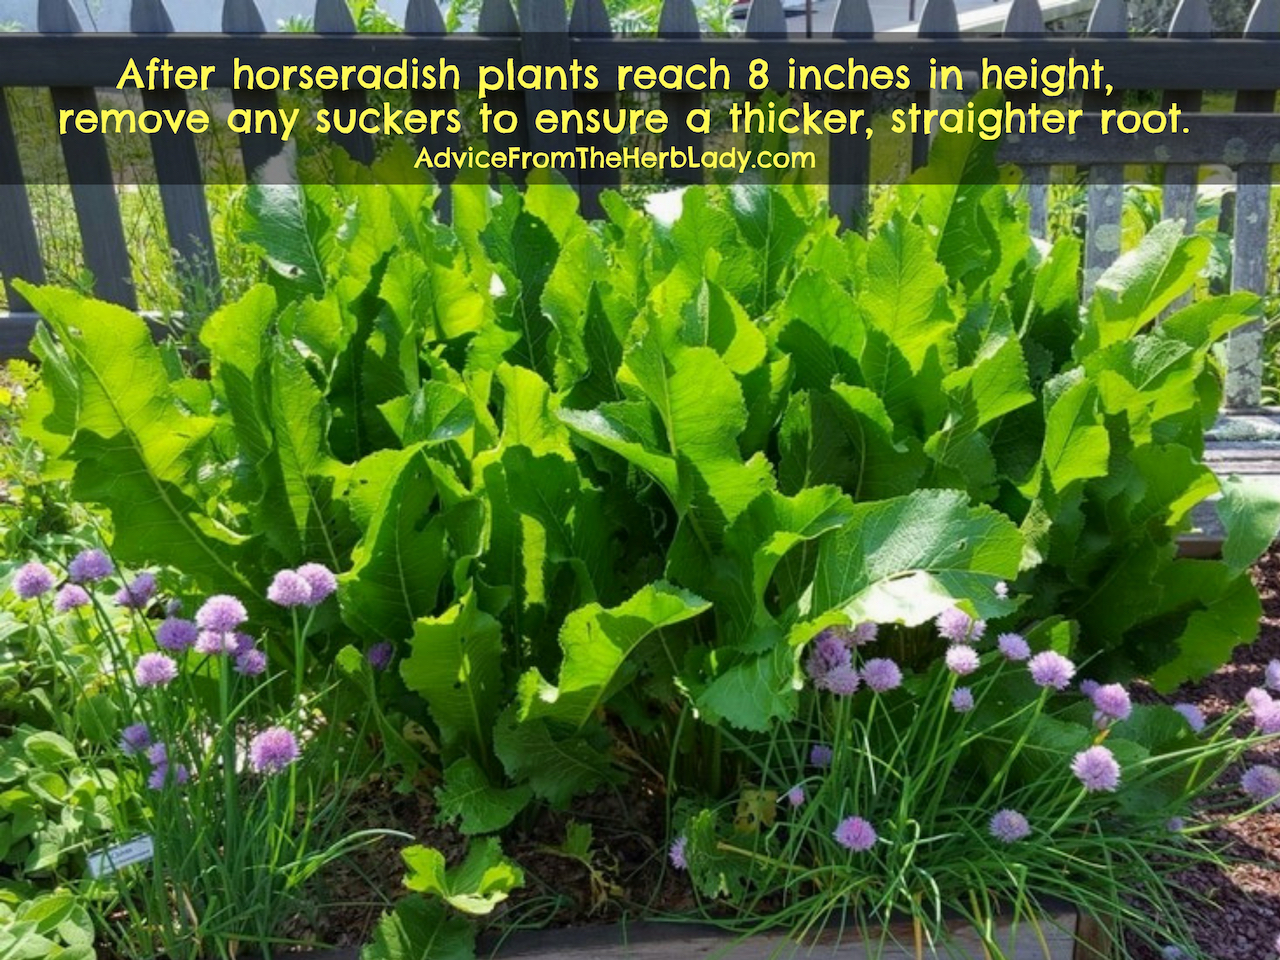 After horseradish plants reach 8 inches in height, remove any suckers to ensure a thicker, straighter root. #Horseradish #Vegetables #HowToGrow #OrganicGardening #Tips #Backyard #ContainerGardening #HealthBenefits